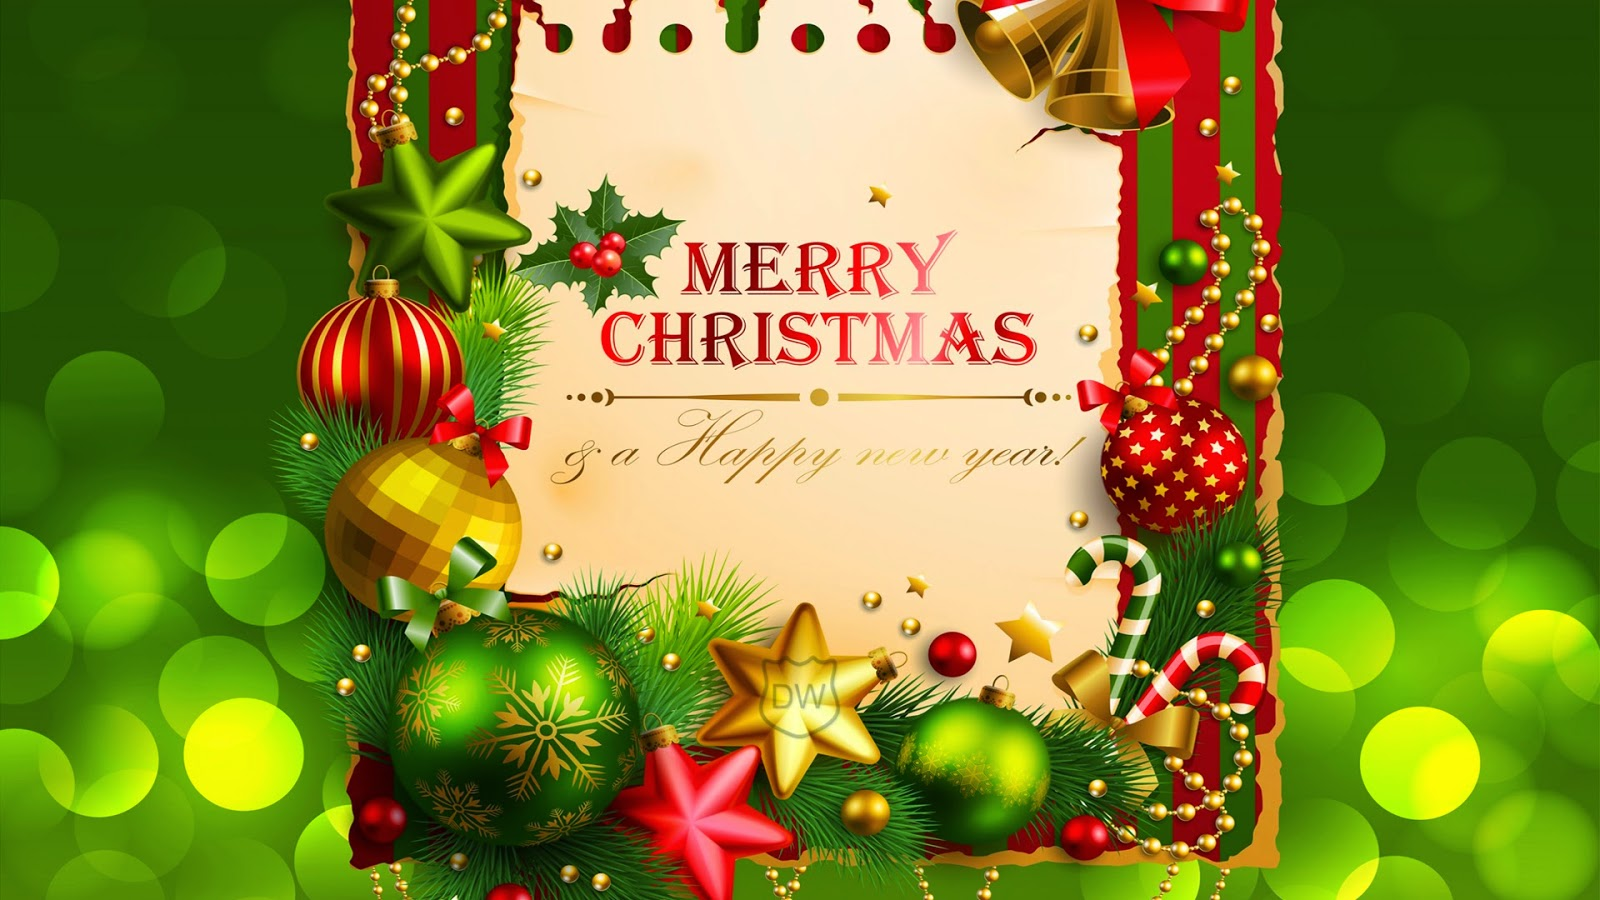 Updated merry christmas images 2017 christmas pictures free merry christmas images 2017 download voltagebd Image collections